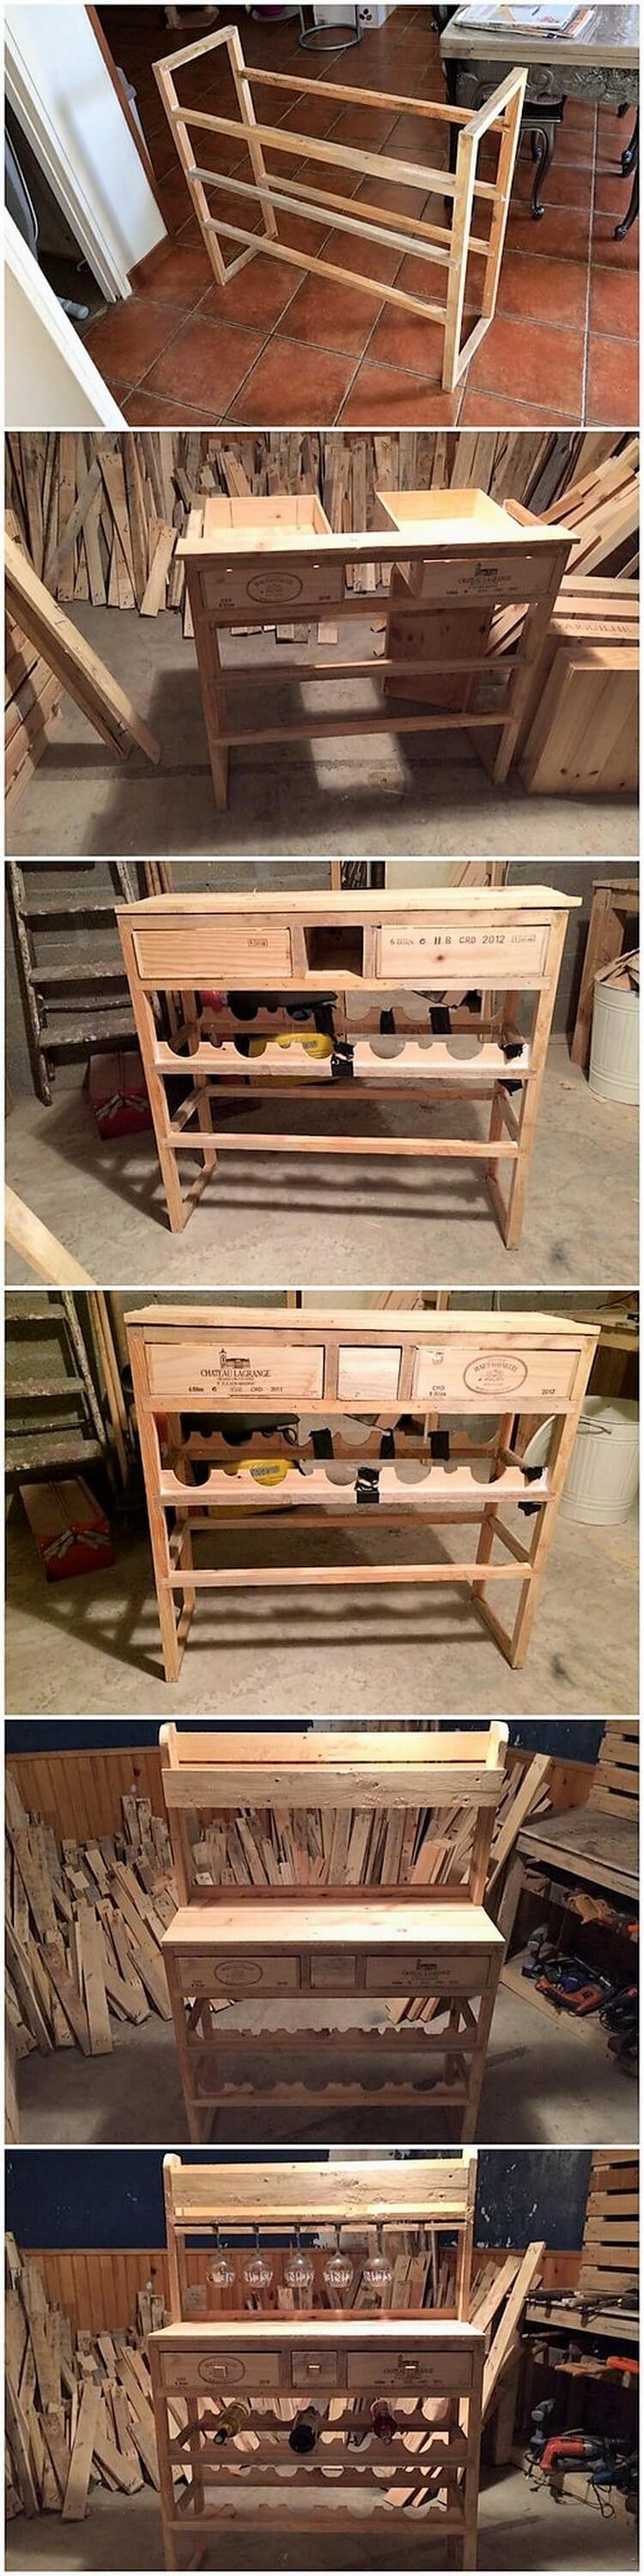 DIY Pallet Table or Cabinet